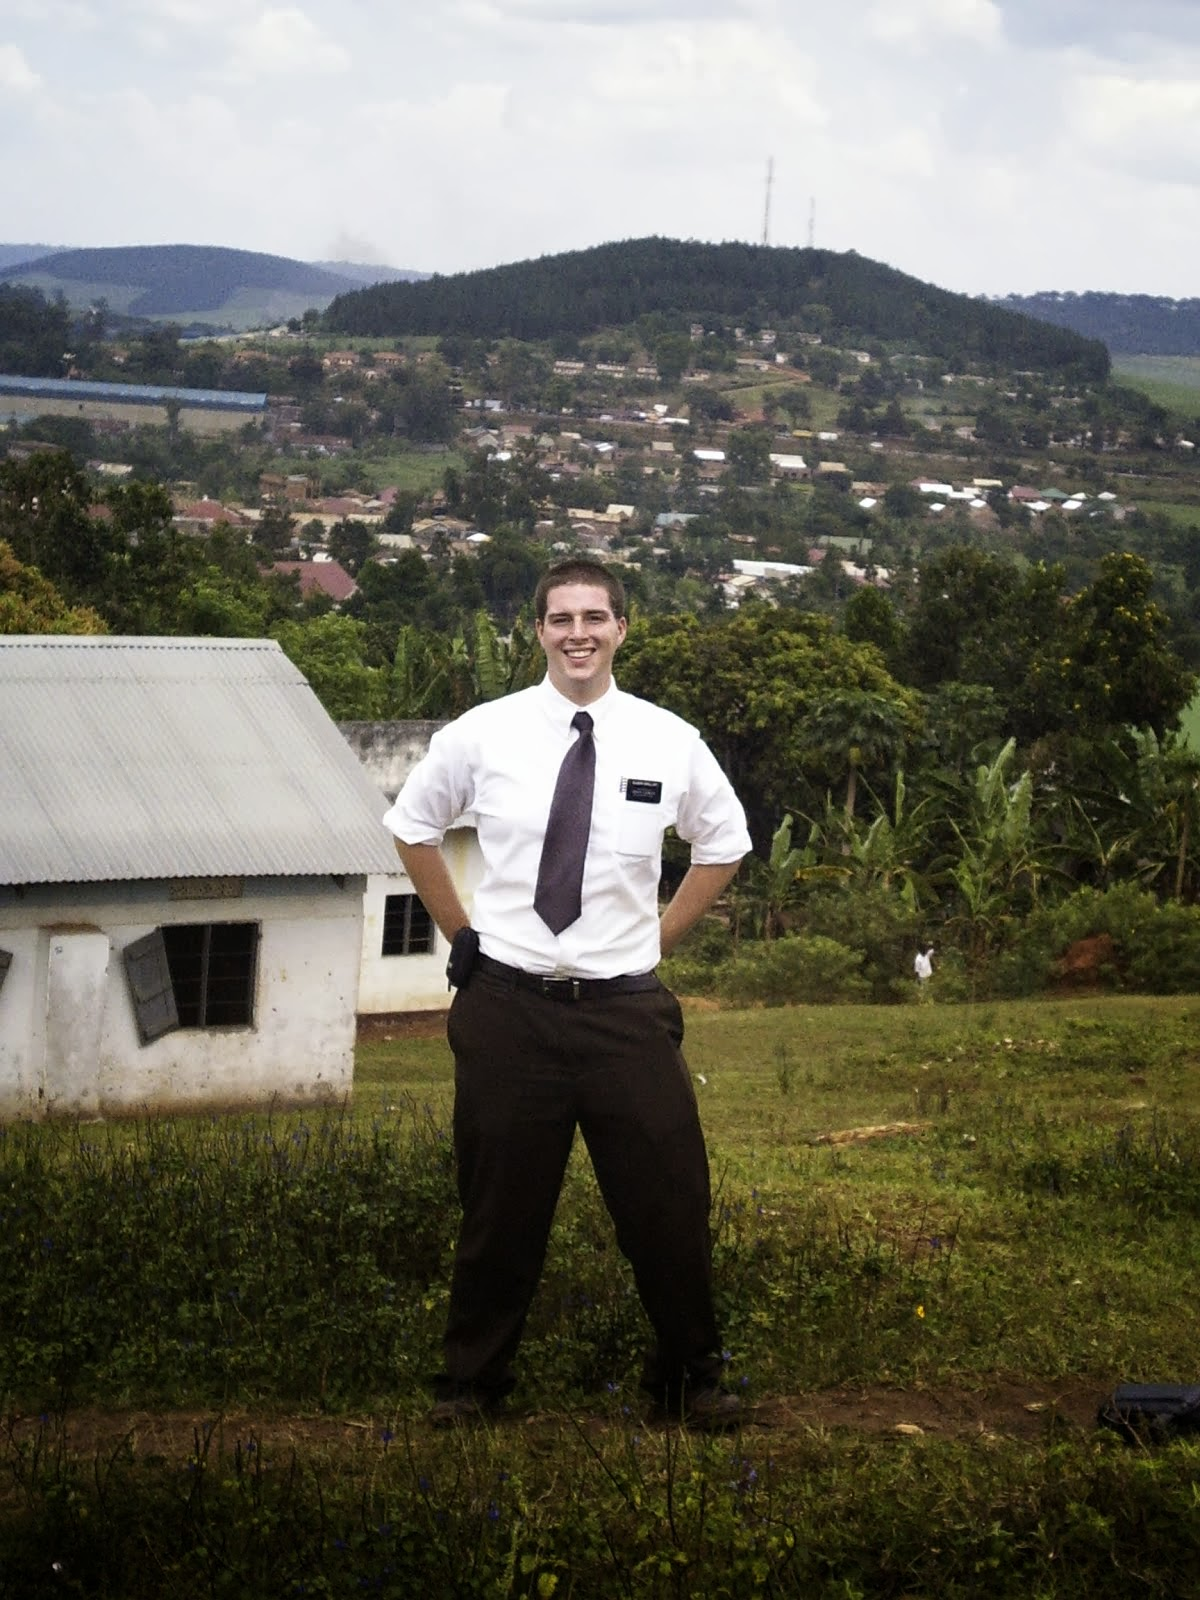 Elder Grilliot in Uganda